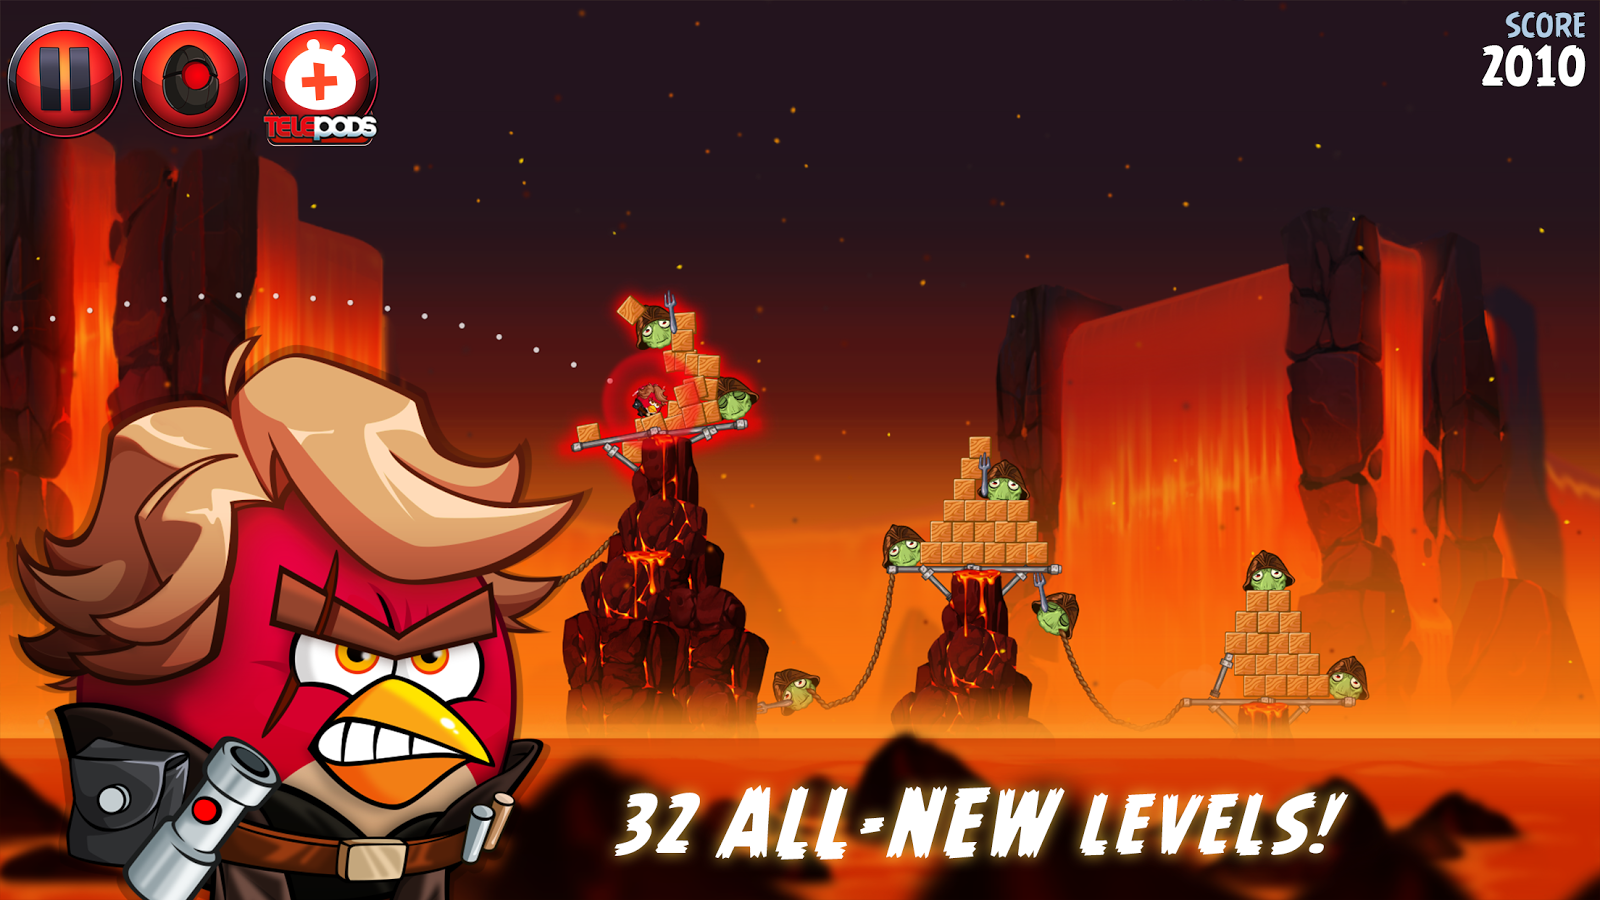 Angry Birds Star Wars Ii 2013 Promotional Art Mobygames